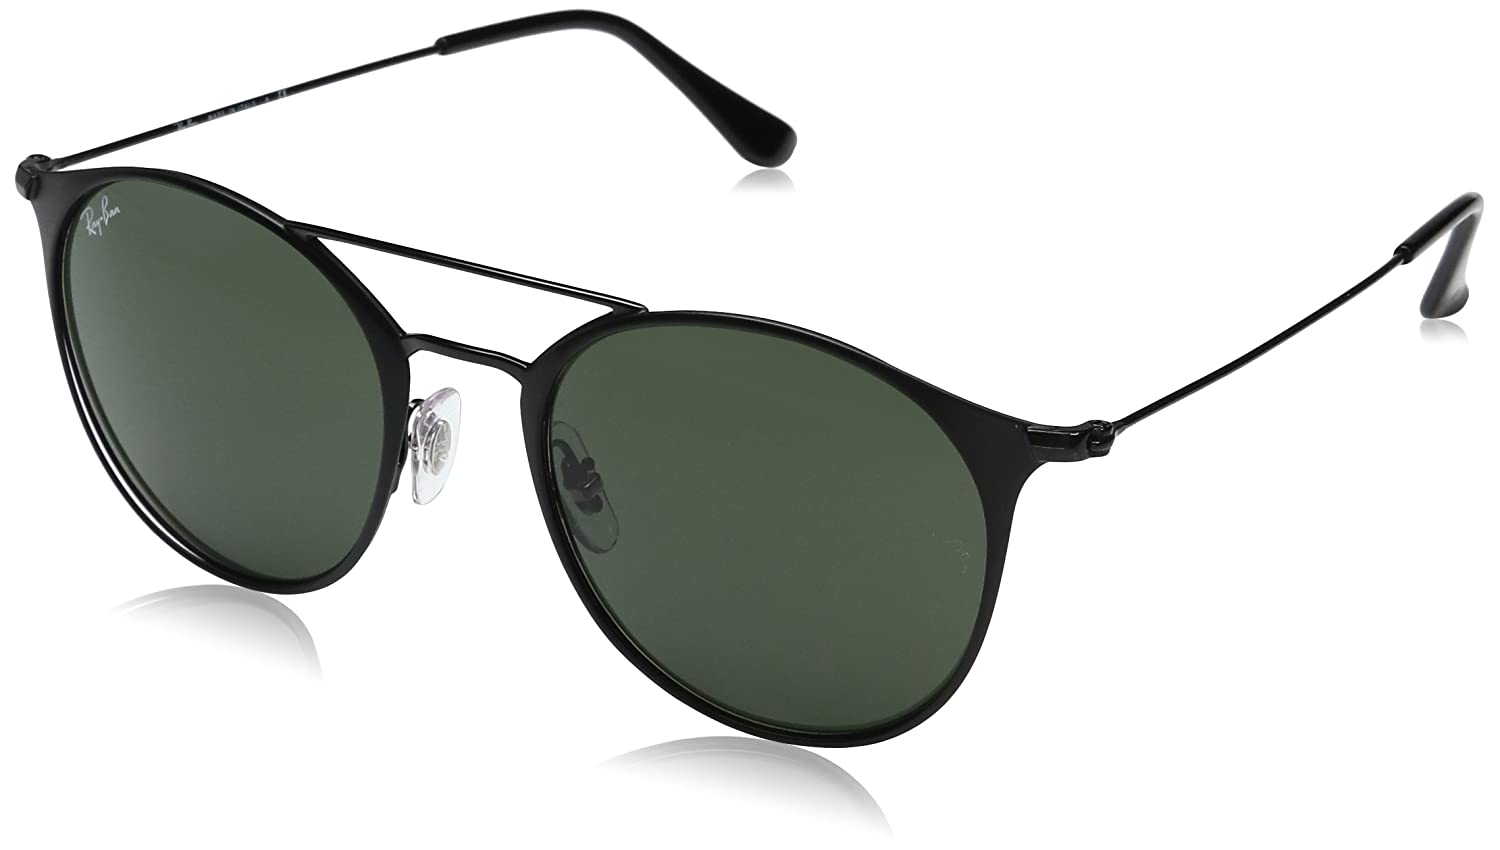 b127920345f Amazon.com  Ray-Ban Steel Unisex Round Sunglasses